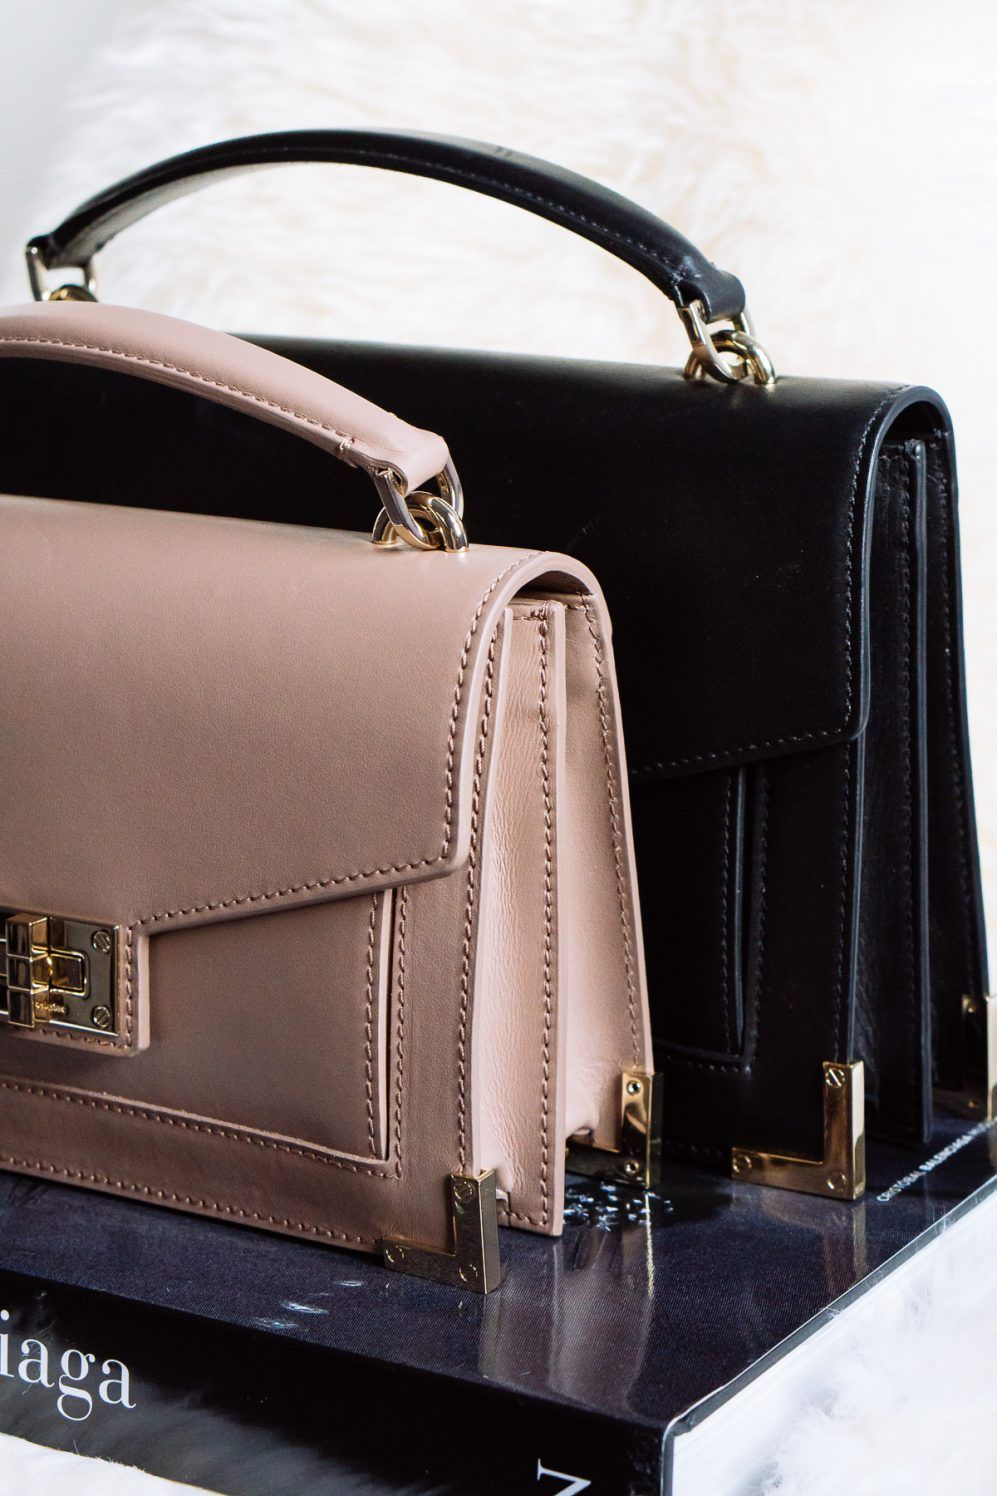 74d1e368fa Introducing: The Emily Bag By The Kooples | A Girl's Many Obsessions ...